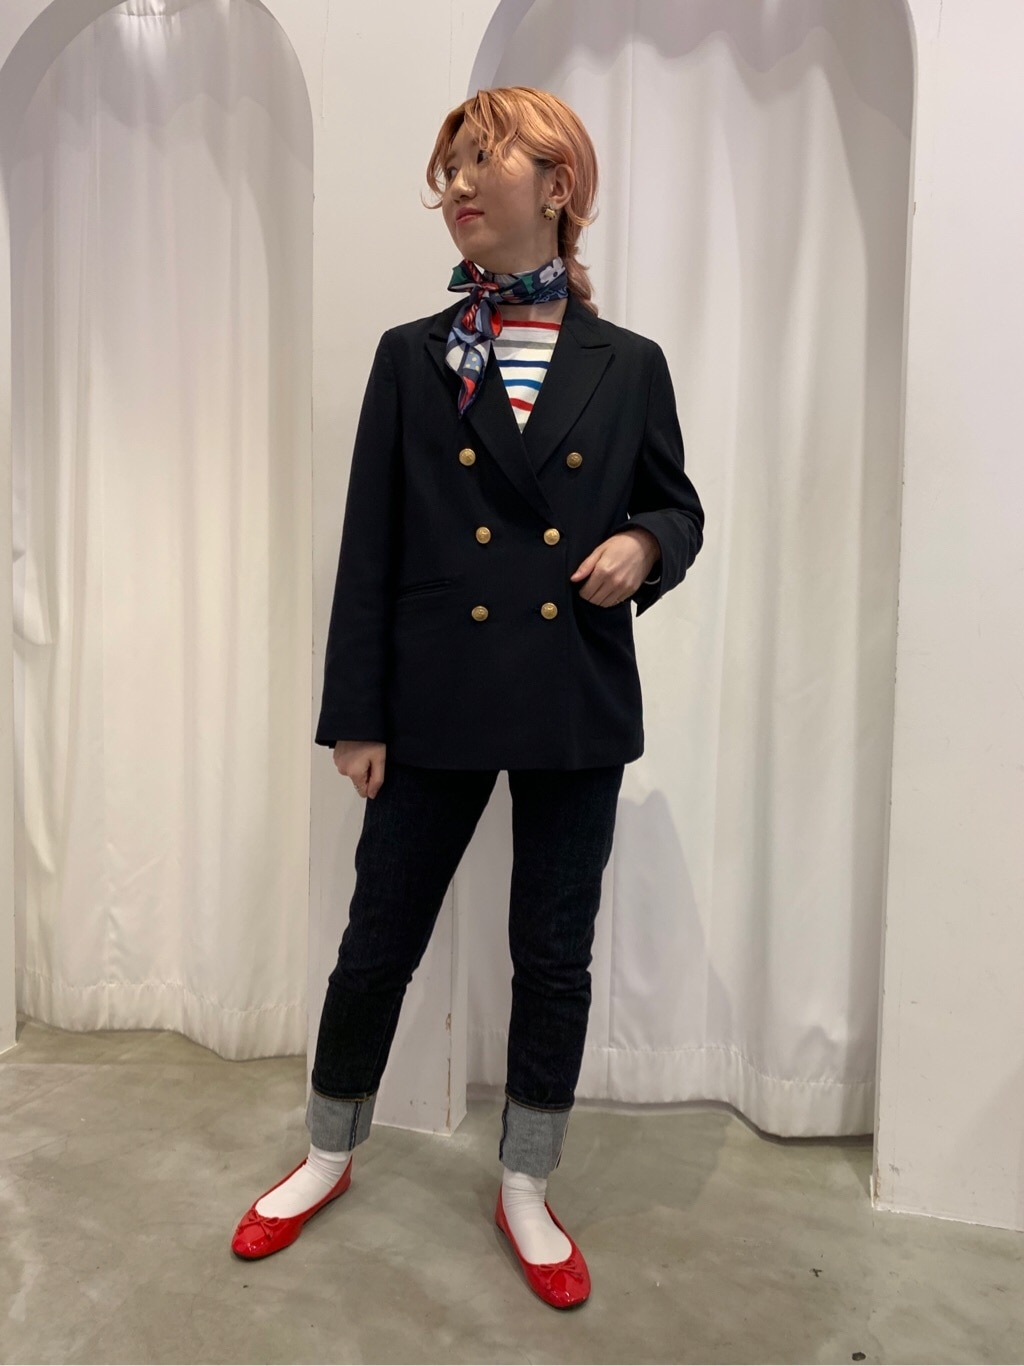 Dot and Stripes CHILD WOMAN 新宿ミロード 身長:160cm 2020.01.08